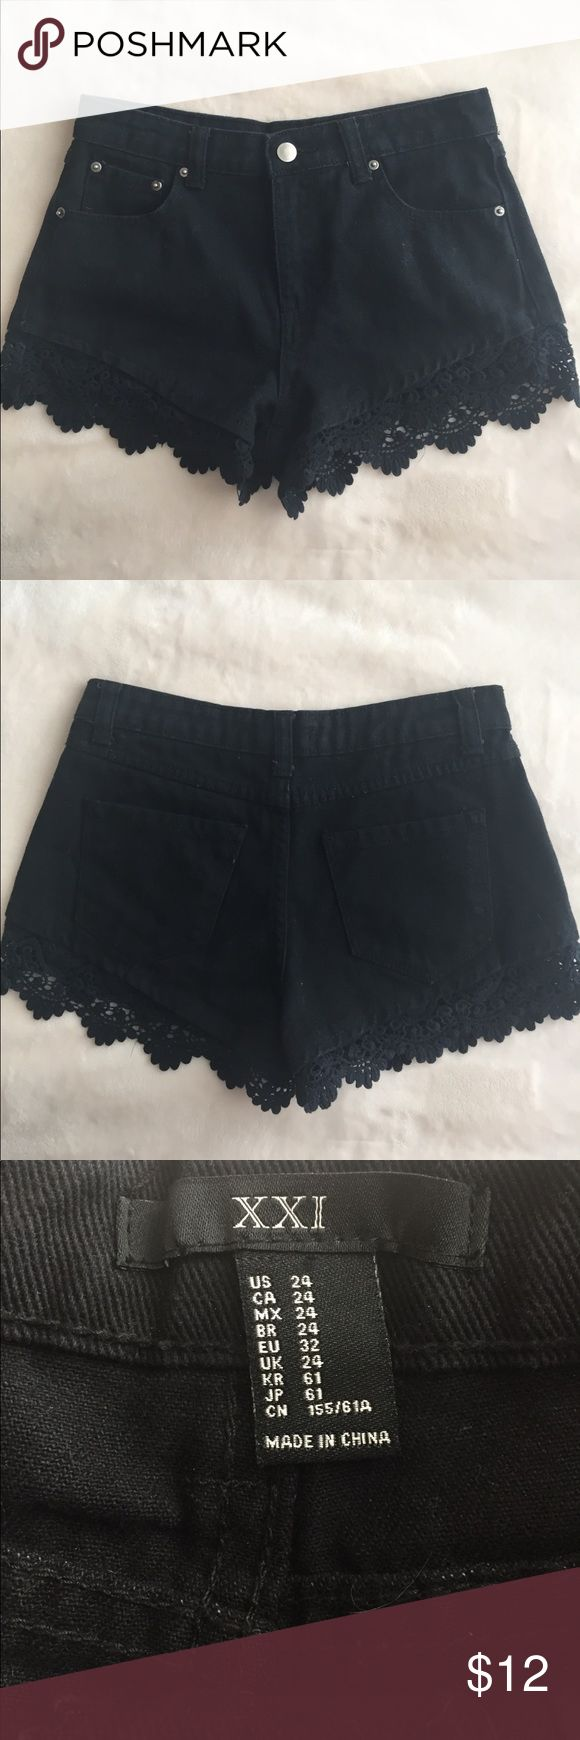 Black Lace Denim Shorts Only worn once! Super cute and the lace trim is very unique. Size 24 or 1 Forever 21 Shorts Jean Shorts